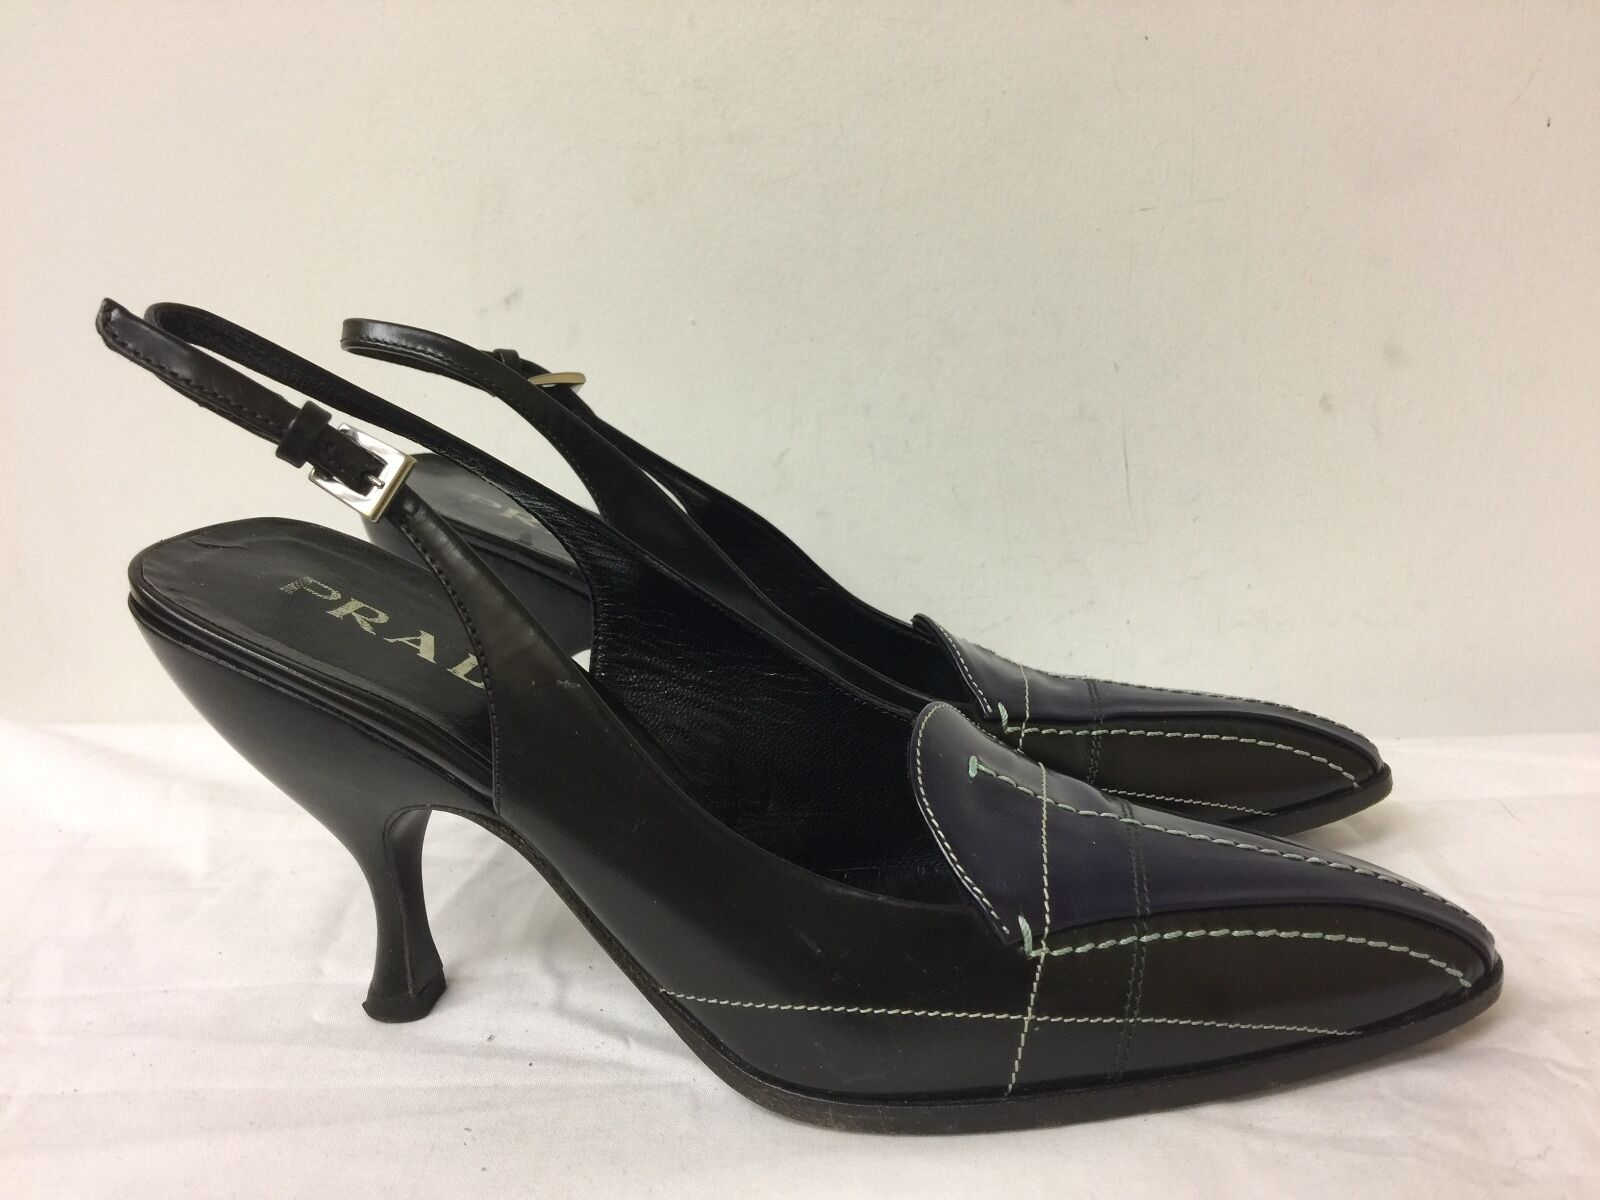 Prada Damens Leder Braun purple  Accent Pointed Toe Slingback heels SZ 37.5